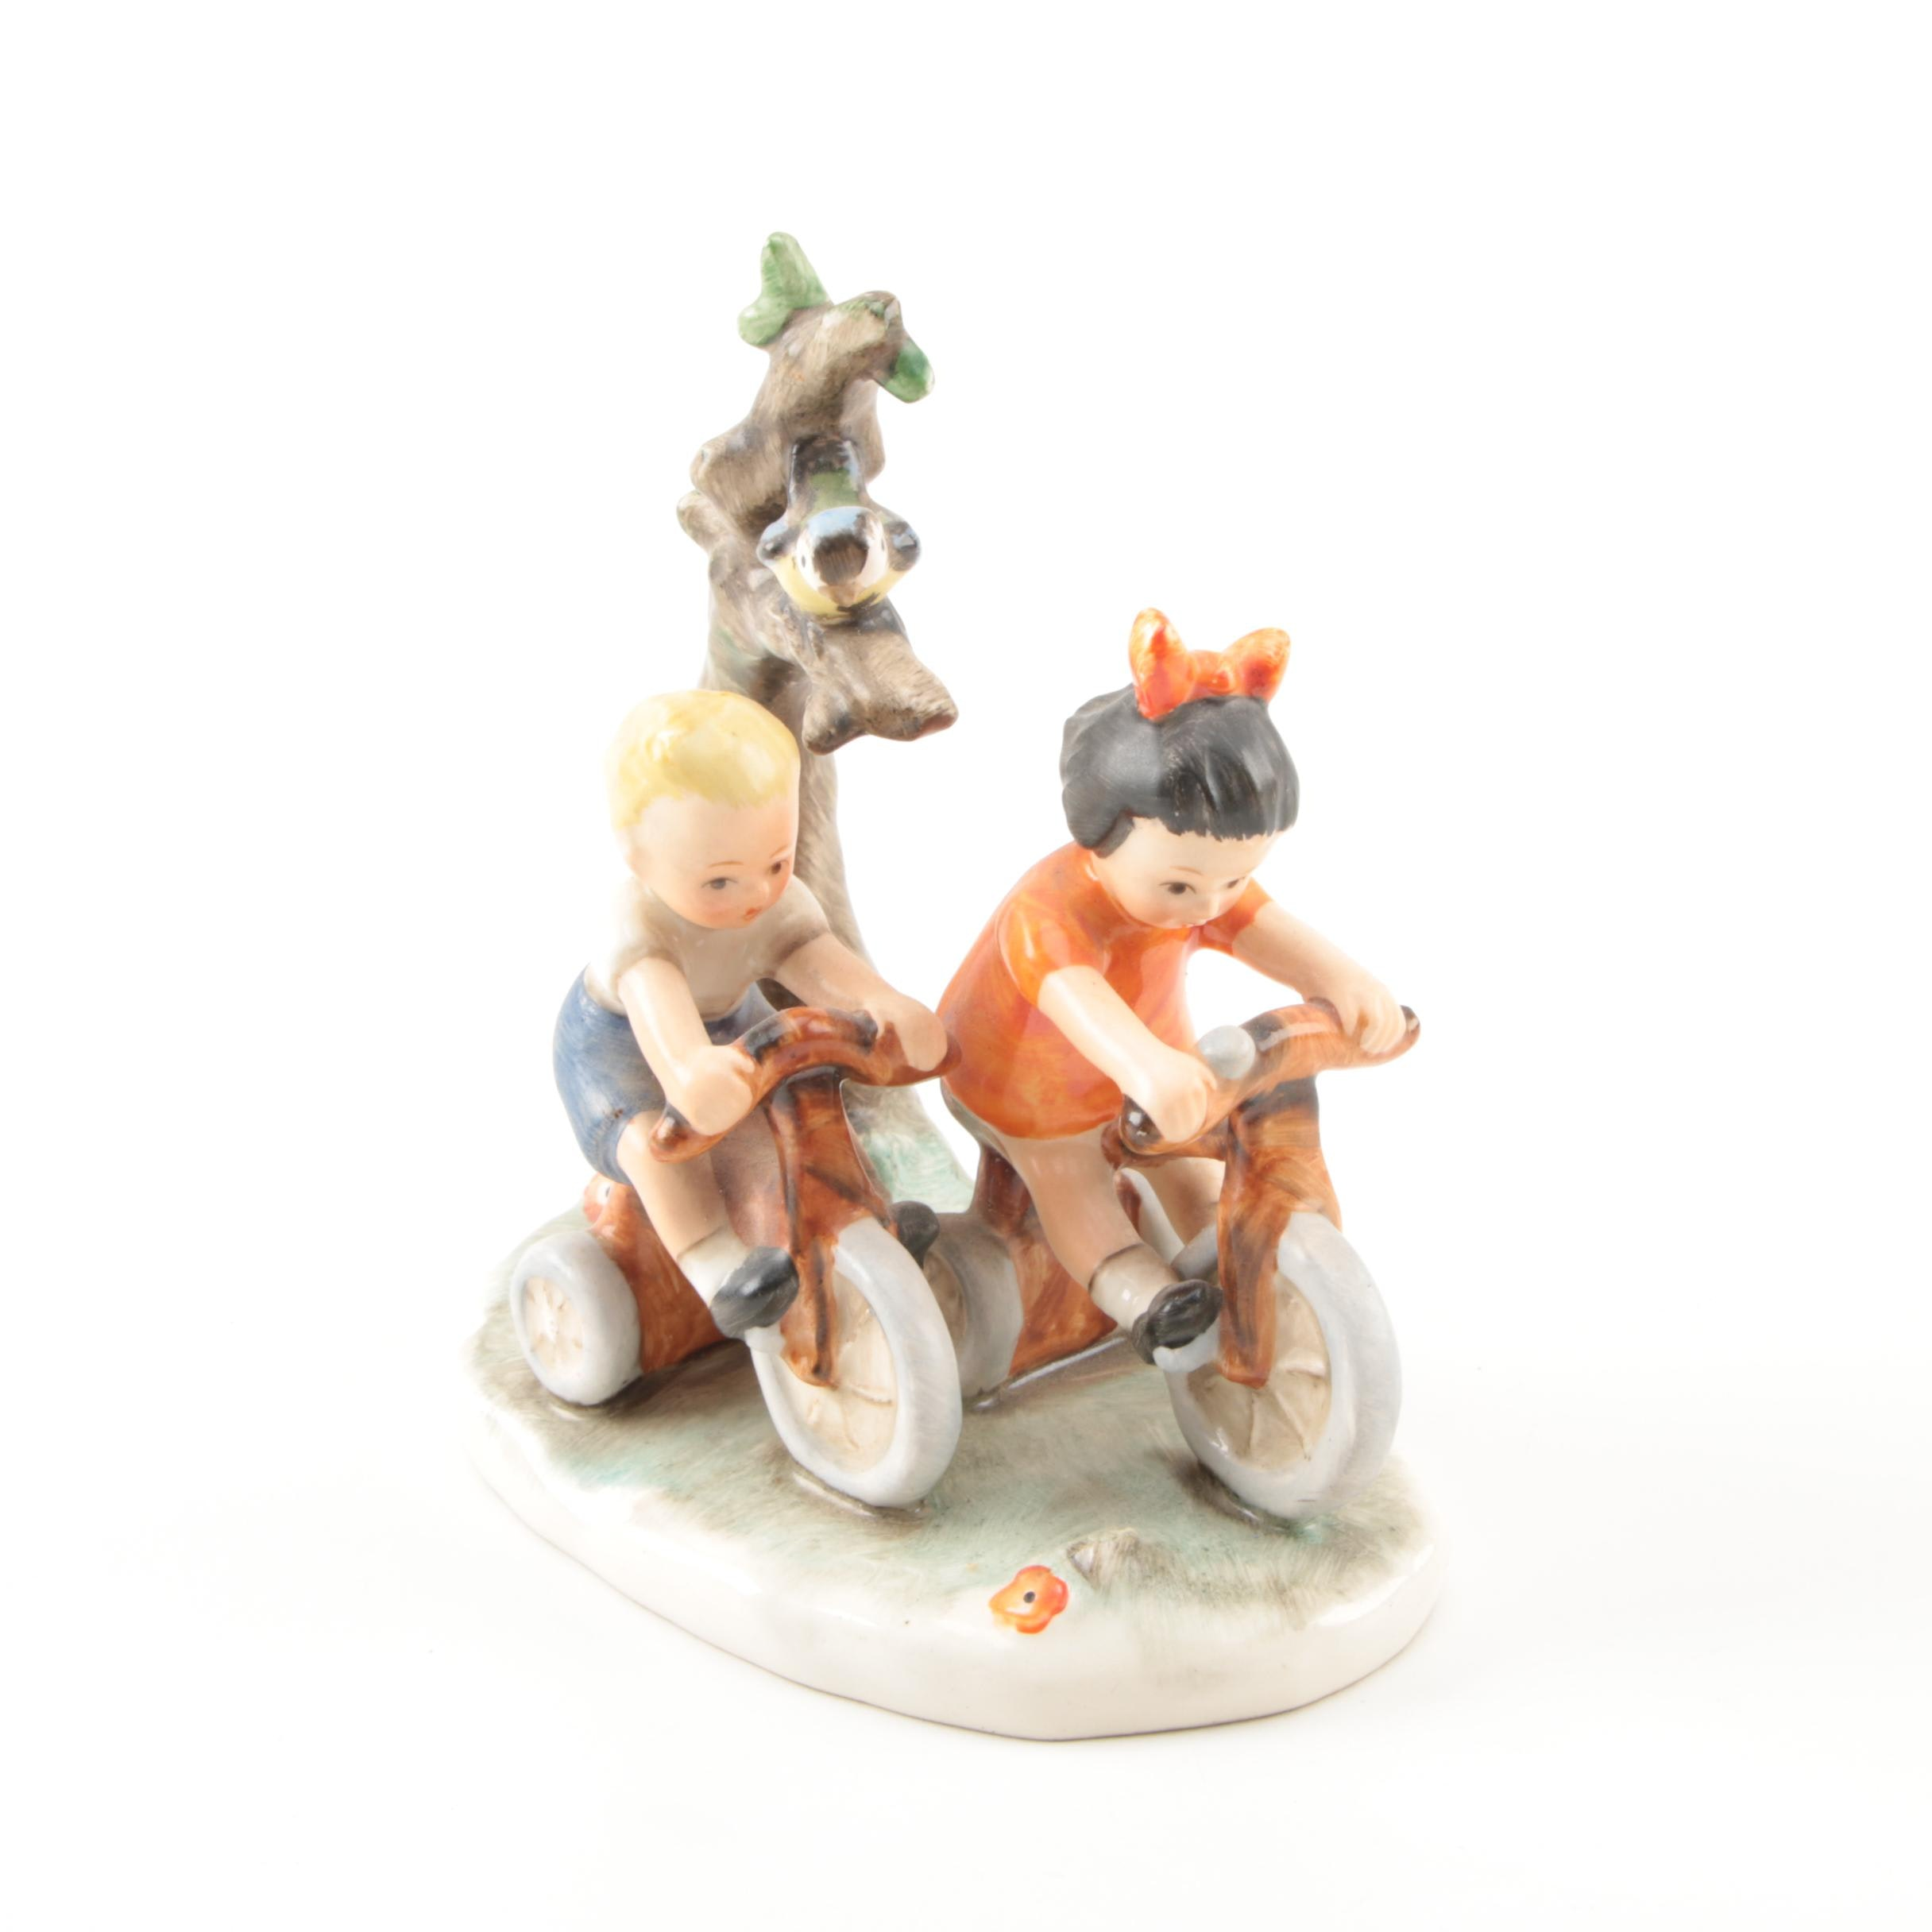 Hand-Painted Goebel Figurine of Children on Bikes